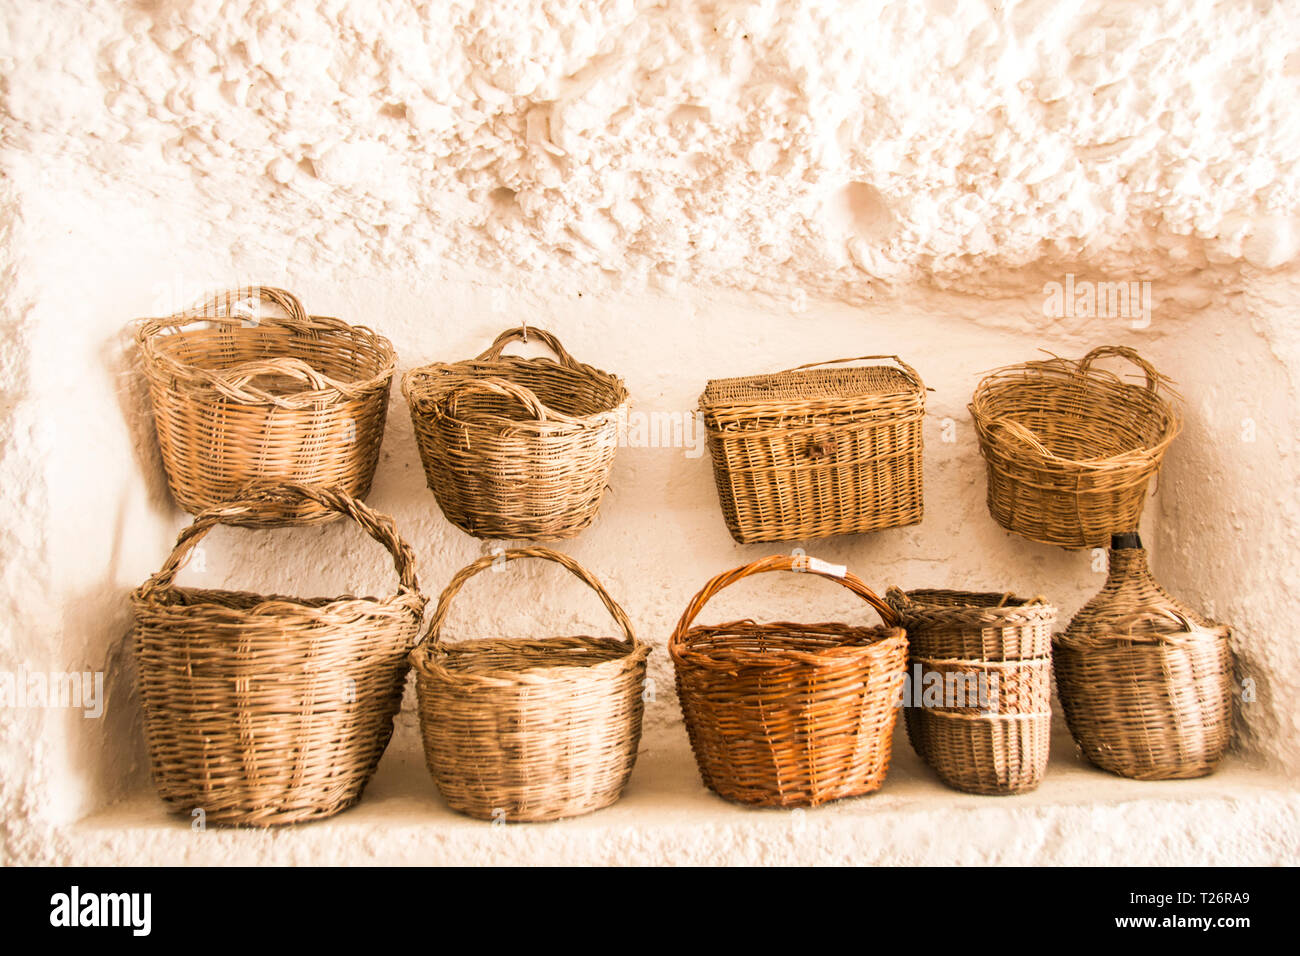 A grouping of woven baskets for sale; Granada, Spain - Stock Image